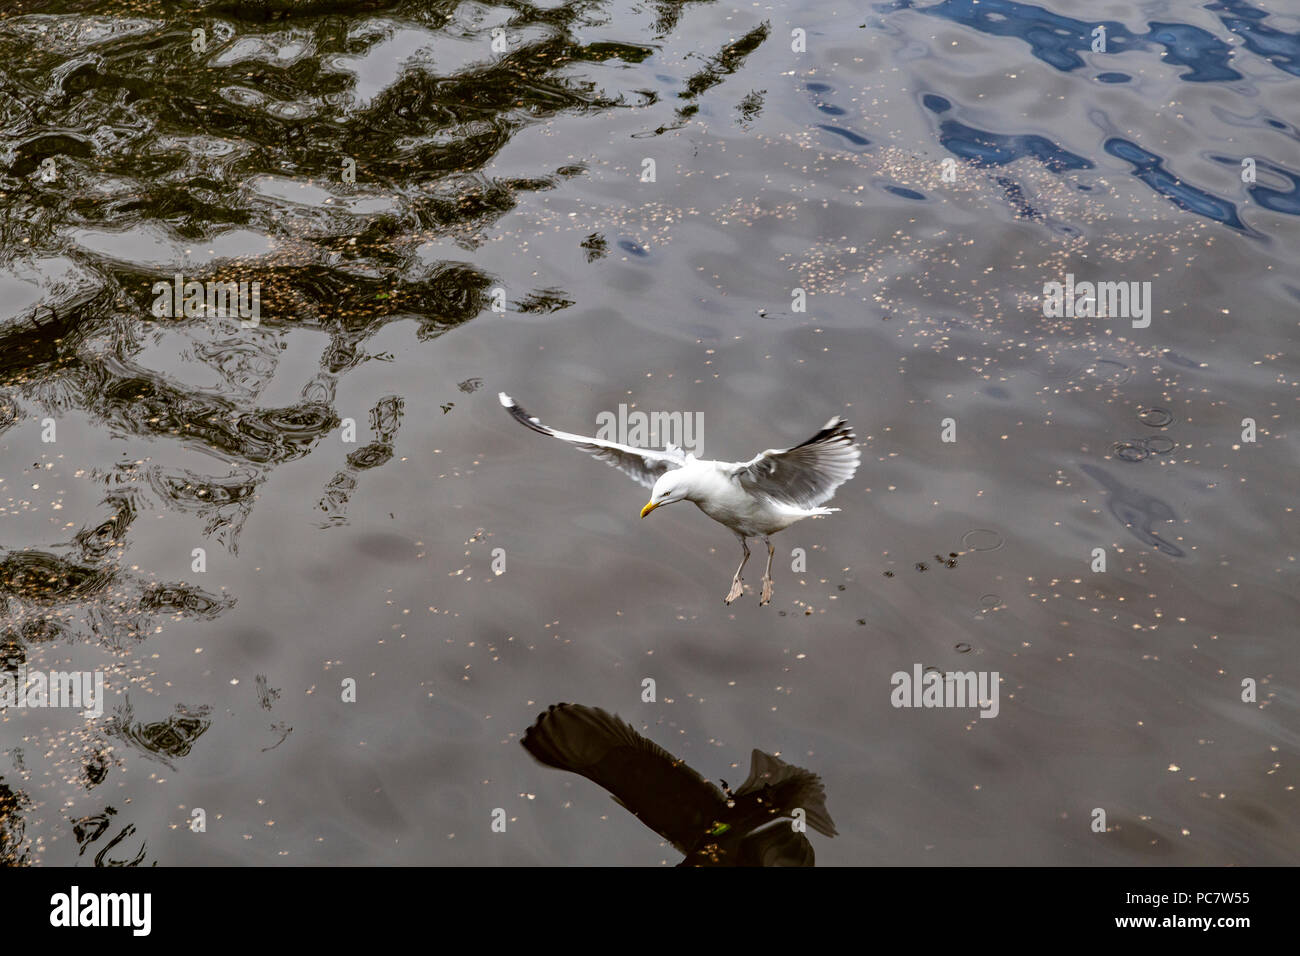 Birds in canals of Amsterdam, Netherlands Stock Photo